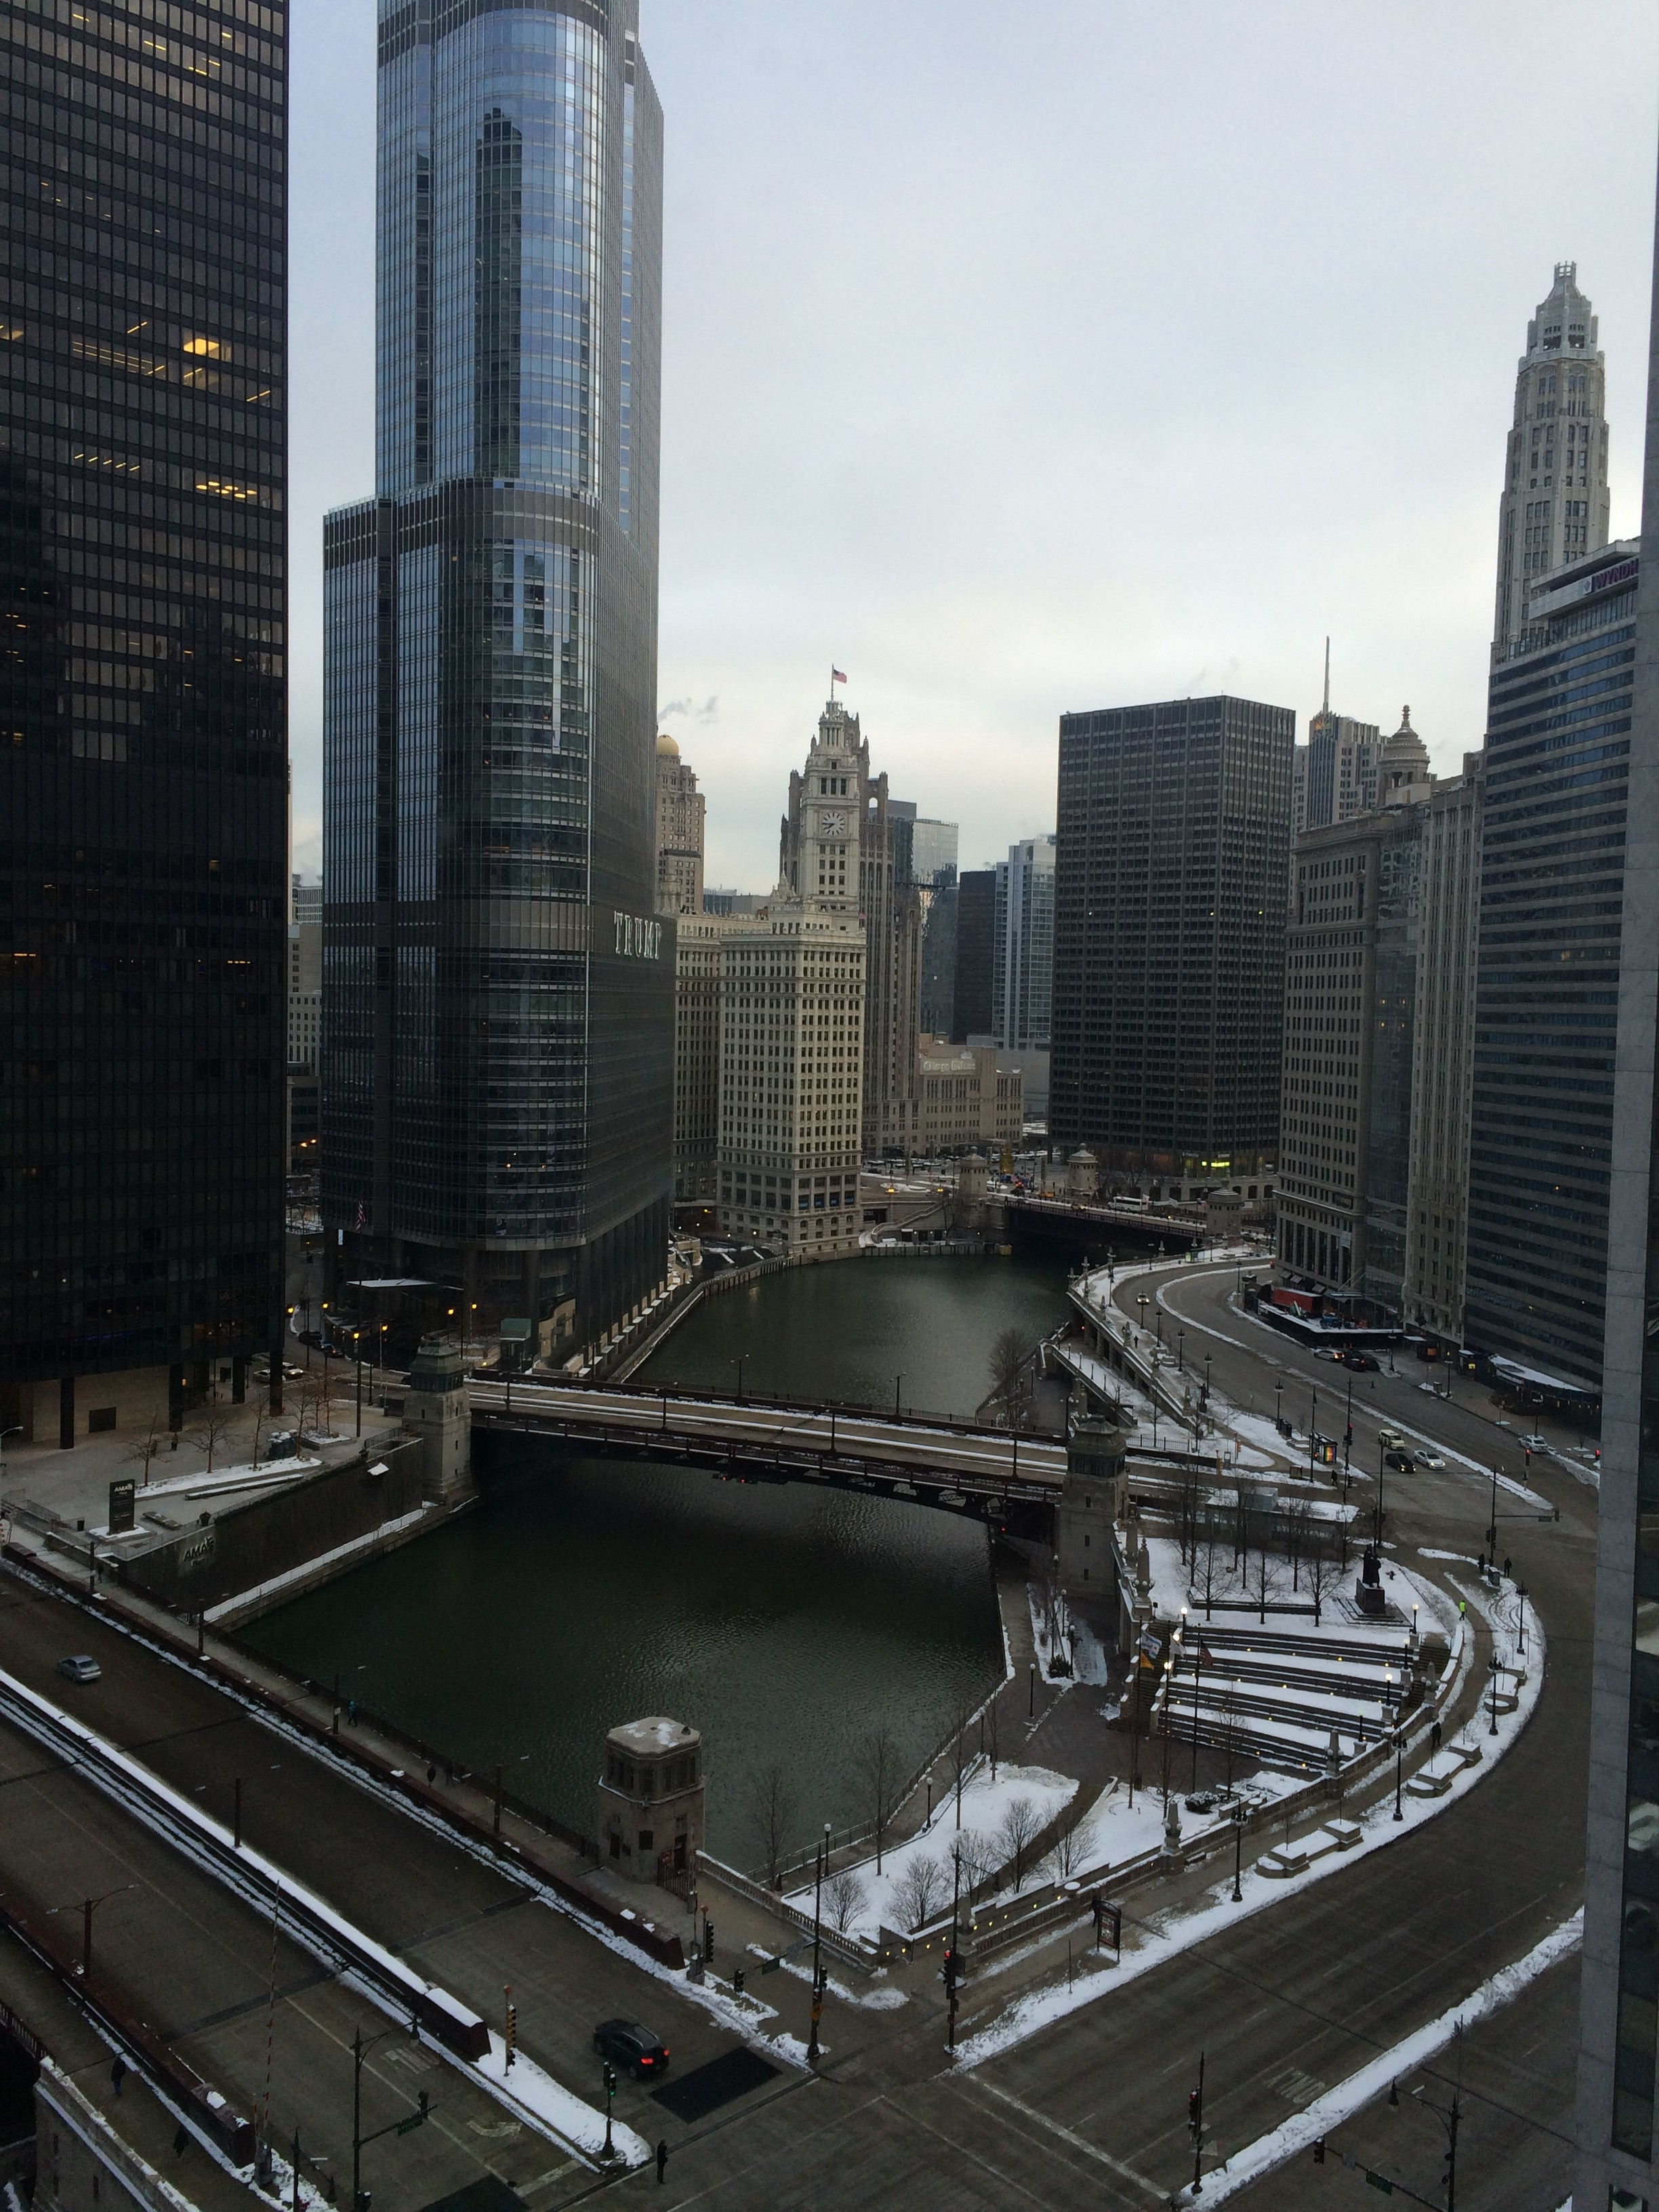 View from Renaissance Hotel's Executive Suite overlooking Chicago river and Downtown. Photo courtesy of Ryan Leeds.